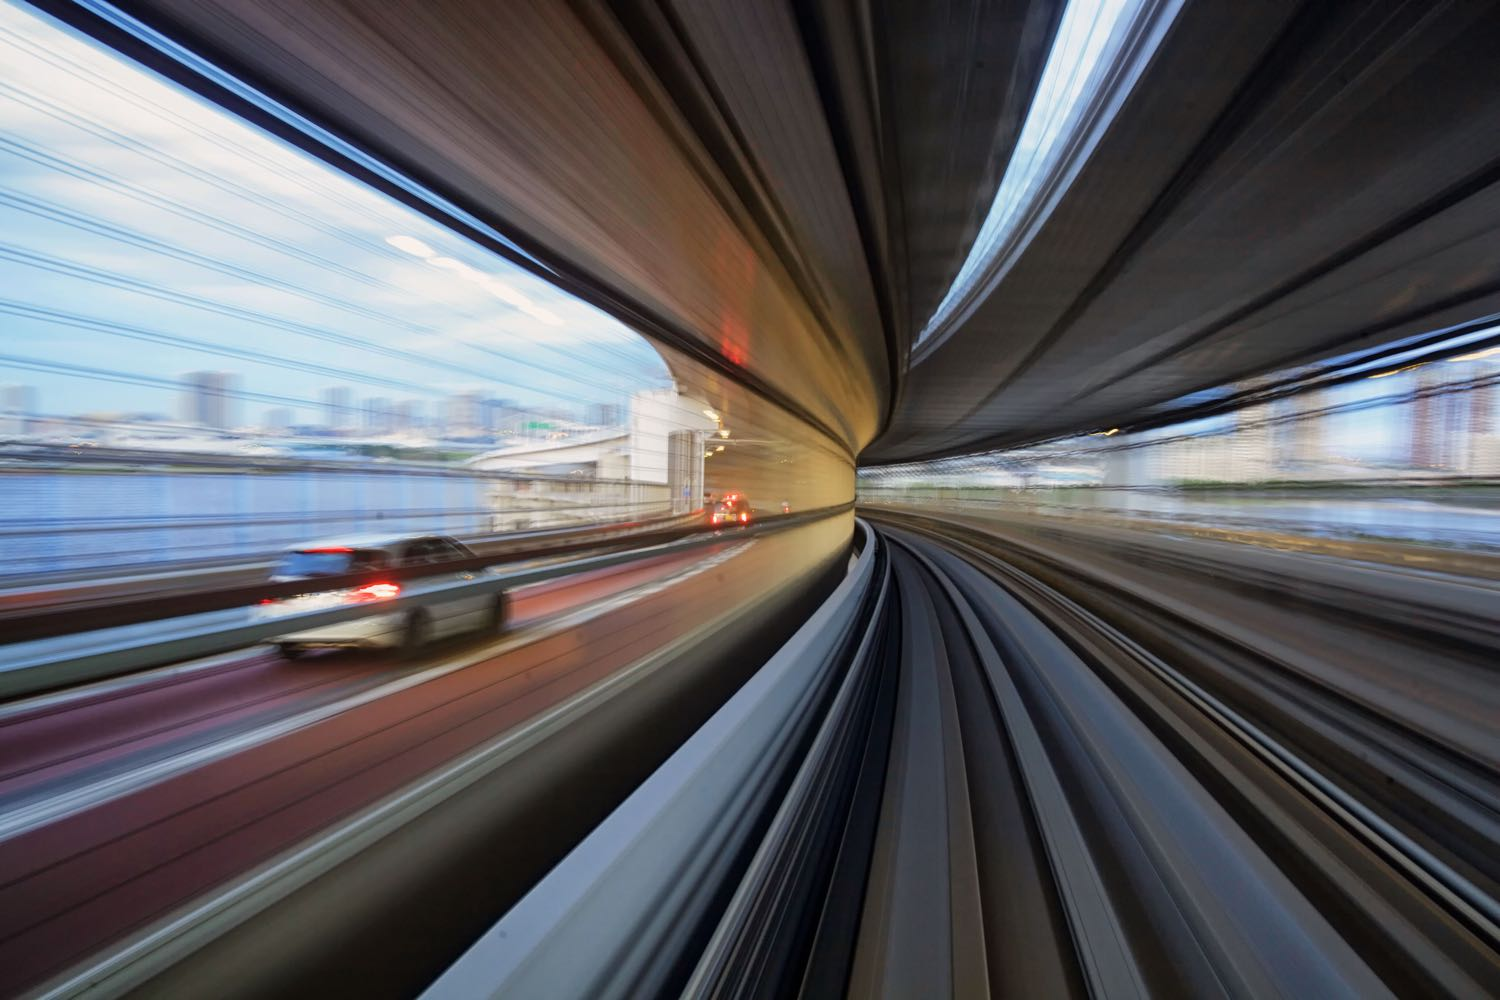 Image: This photo was taken from a moving train. The slower shutter speed created motion blur.